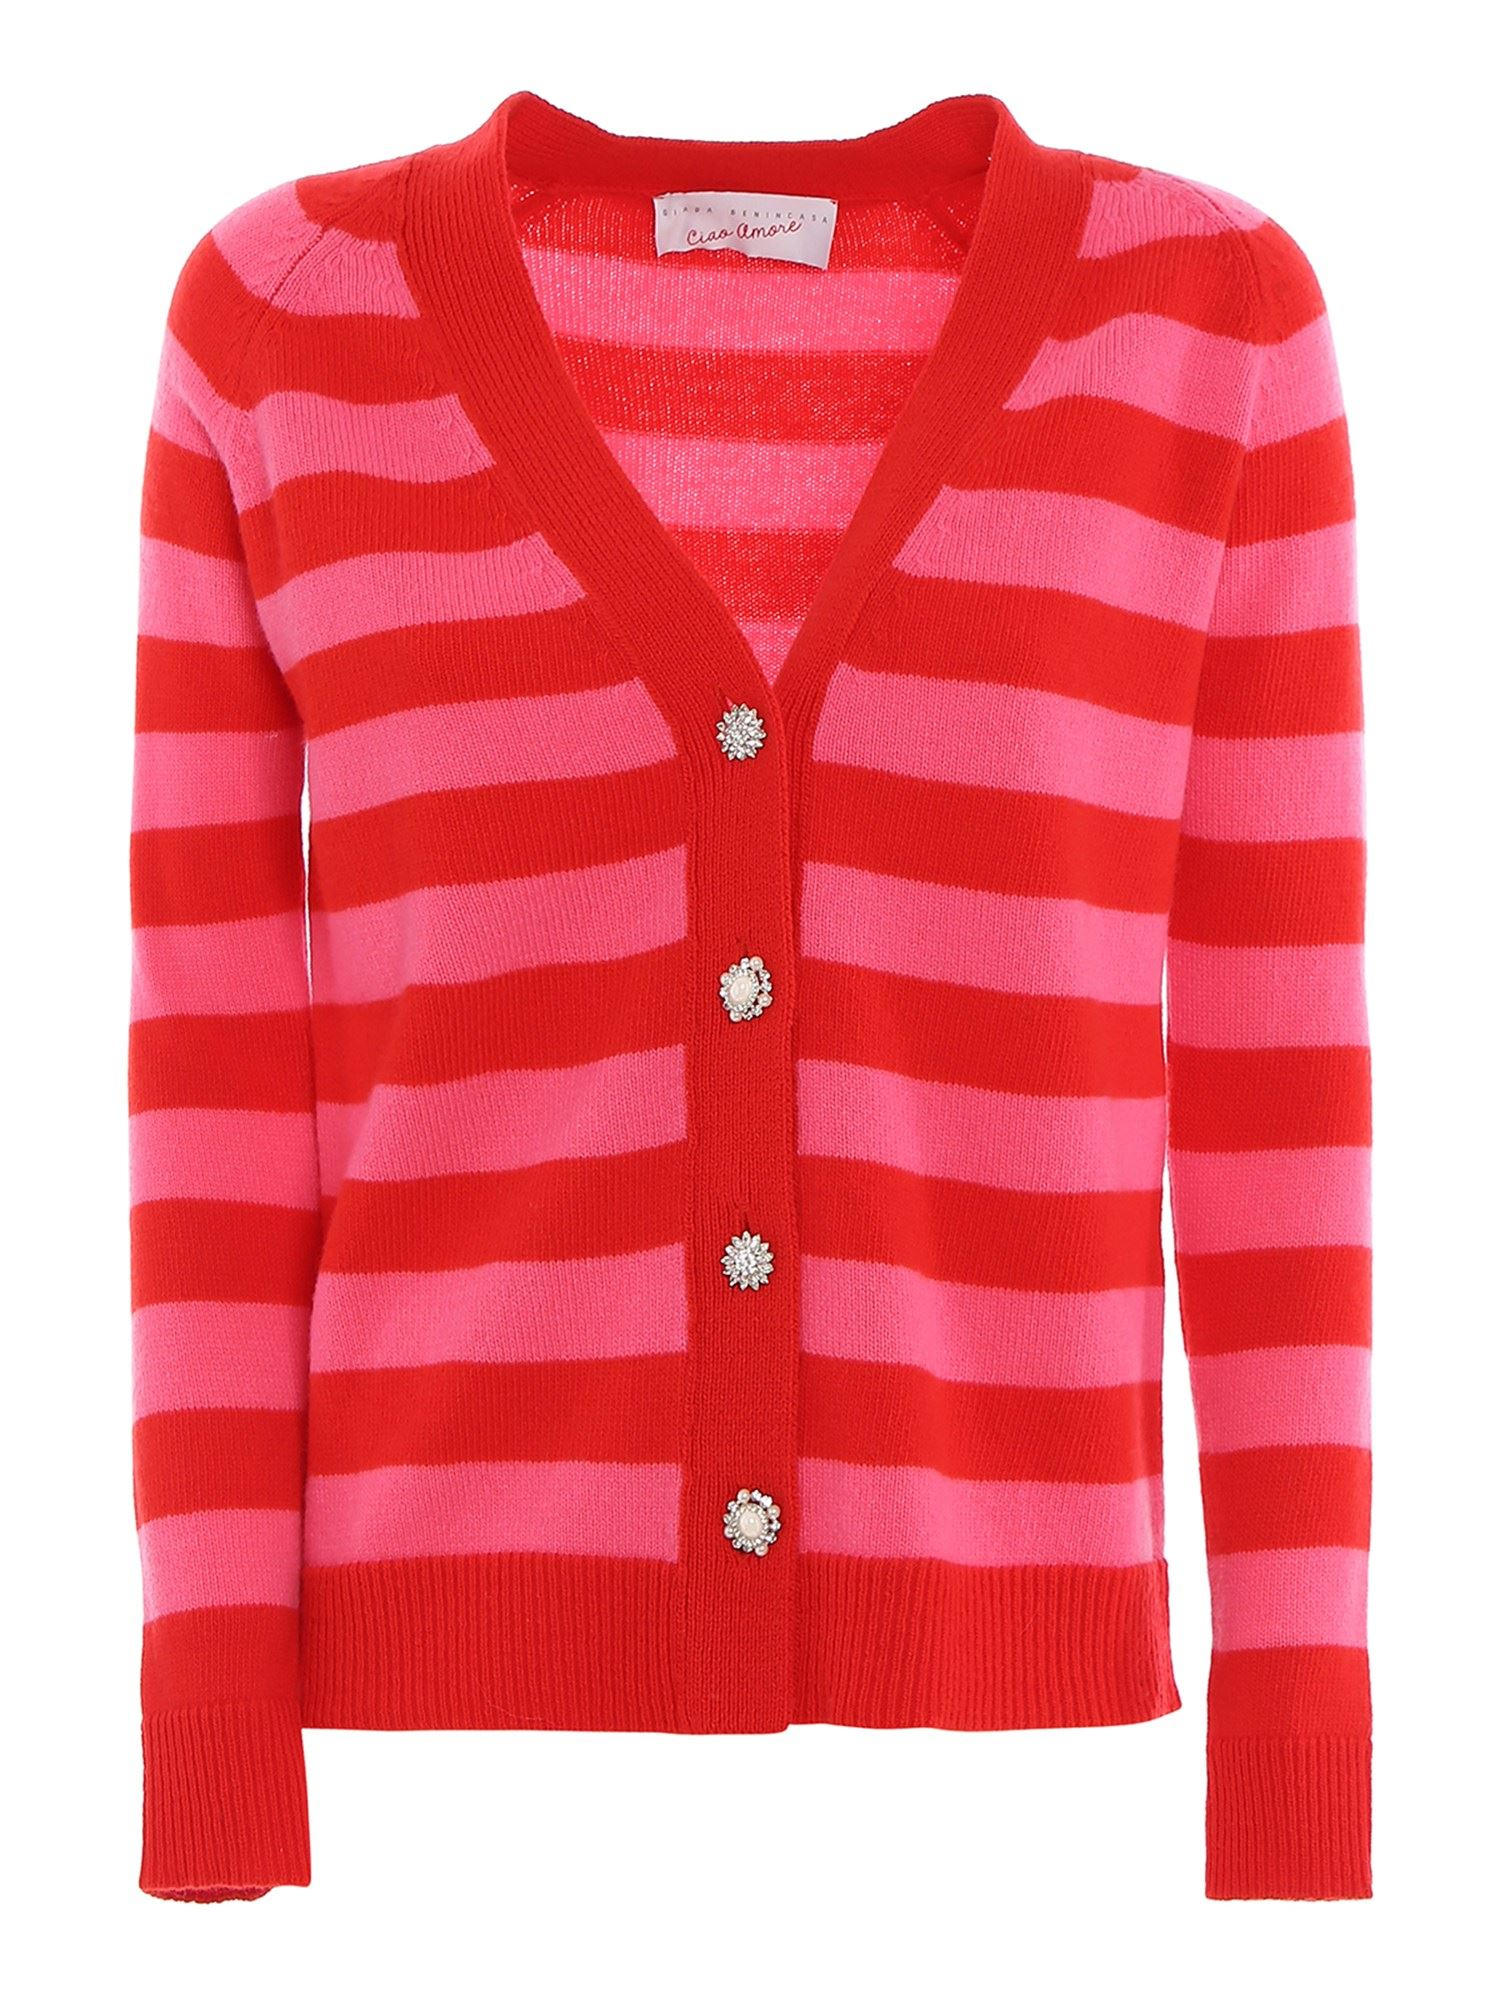 Giada Benincasa STRIPED CARDIGAN WITH EMBELLISHED BUTTONS